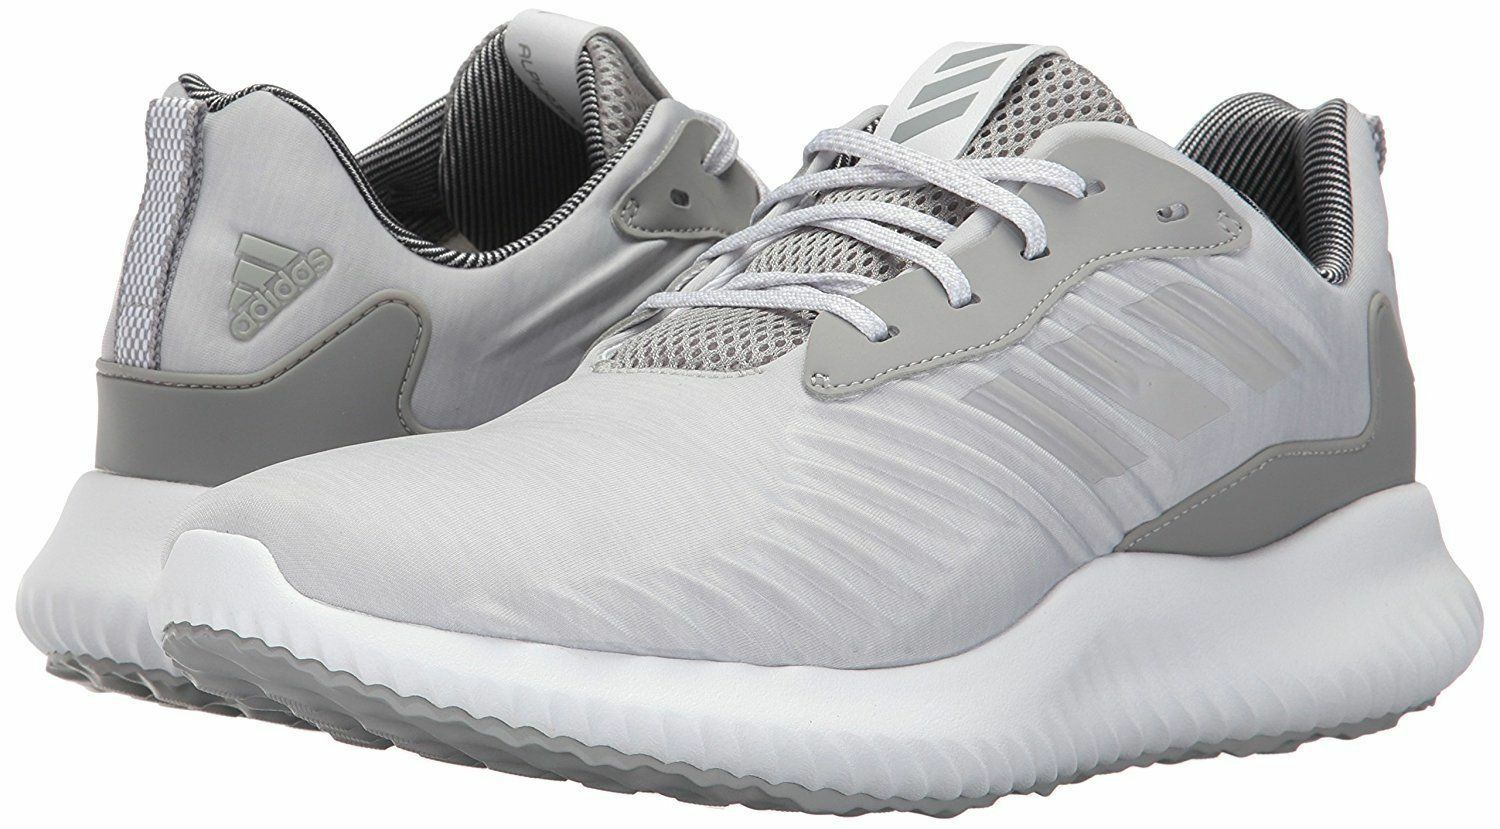 ADIDAS ALPHABOUNCE RC LOW RUNNING SNEAKERS MEN SHOES GREY B42863 SIZE 10.5 NEW